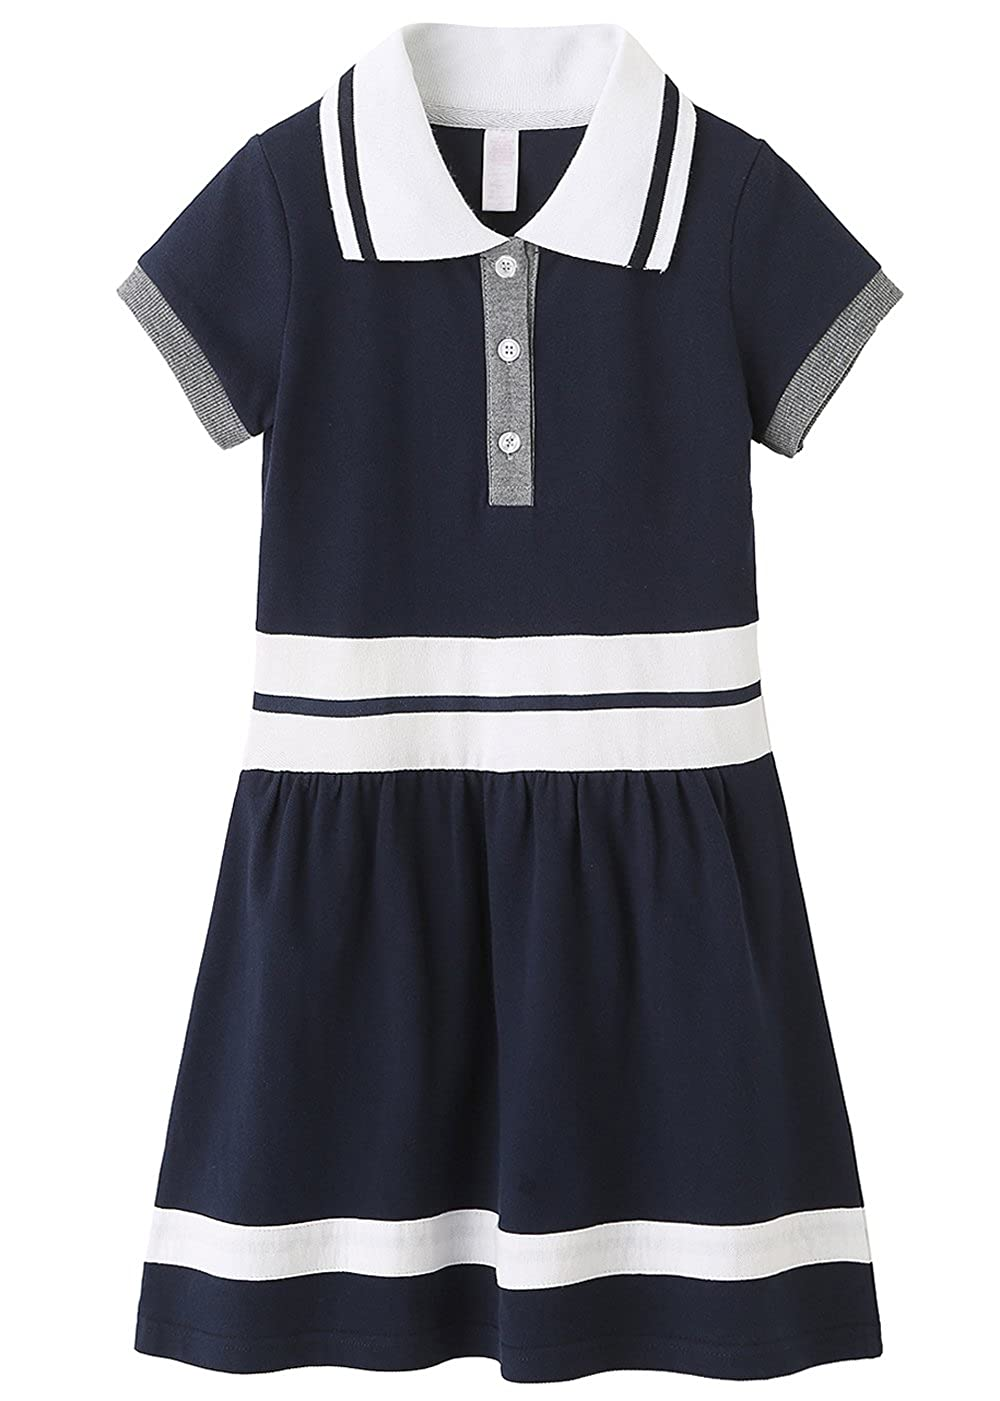 Grandwish School Uniform Girls' Short Sleeve Polo Dress(2 Colors) for Age 5 to 14 AMZCC081